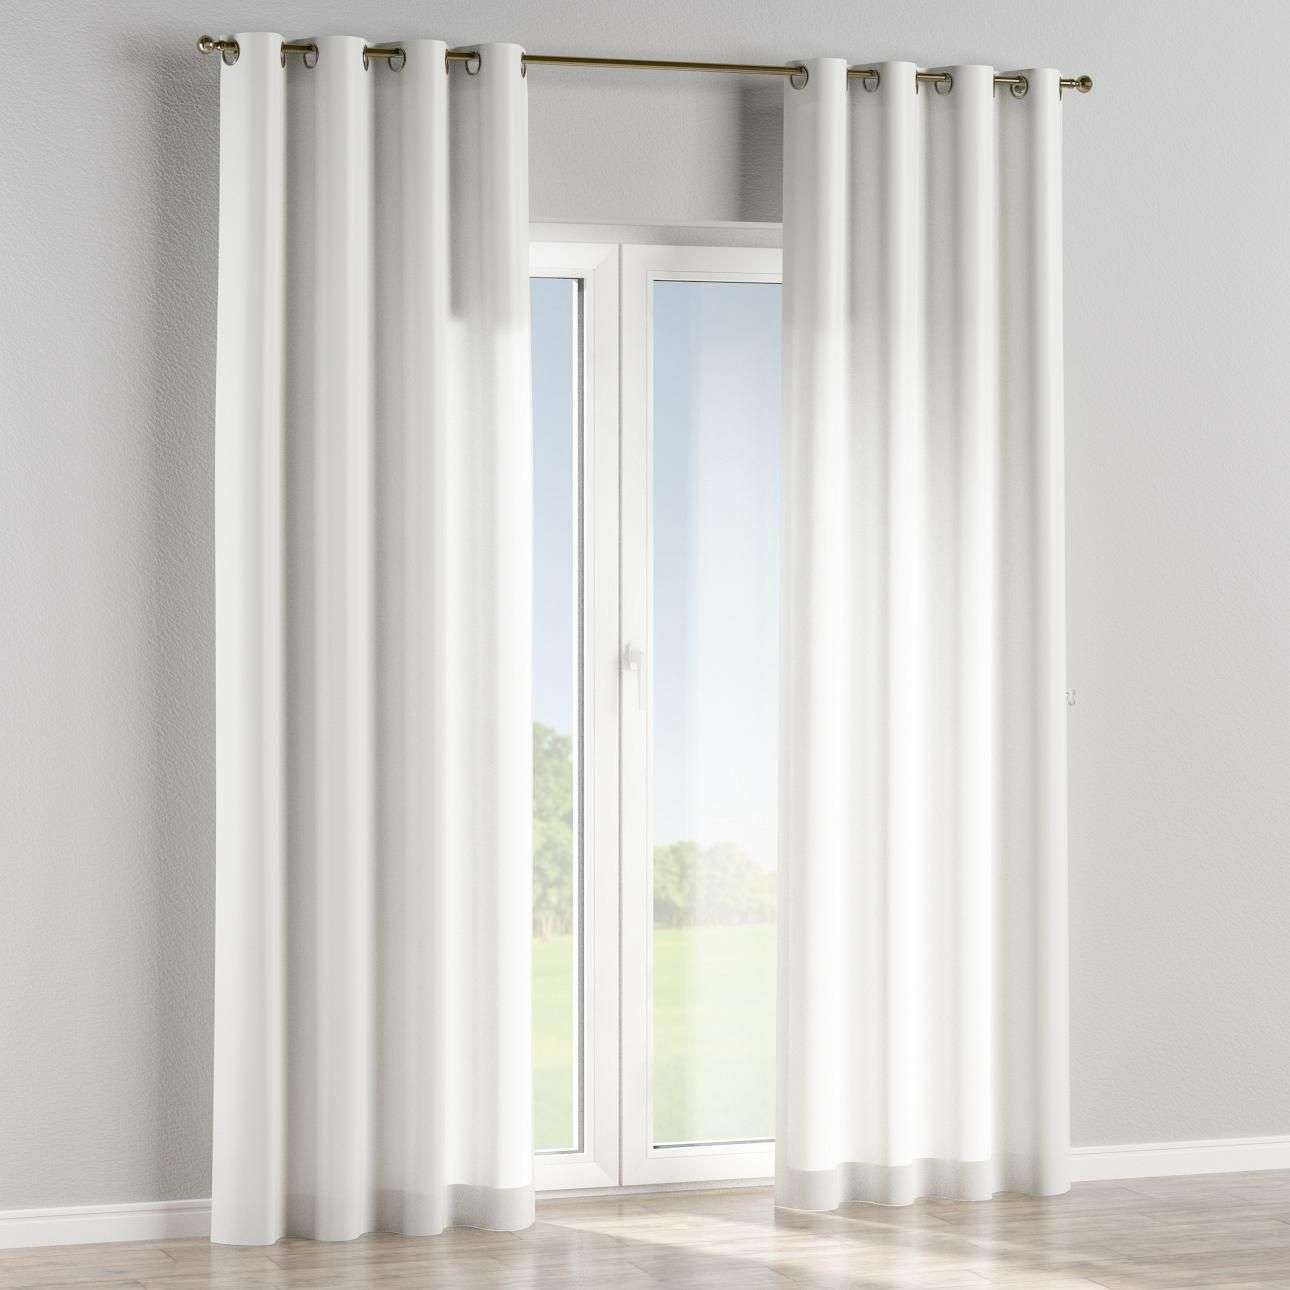 Eyelet curtains in collection Rustica, fabric: 140-32